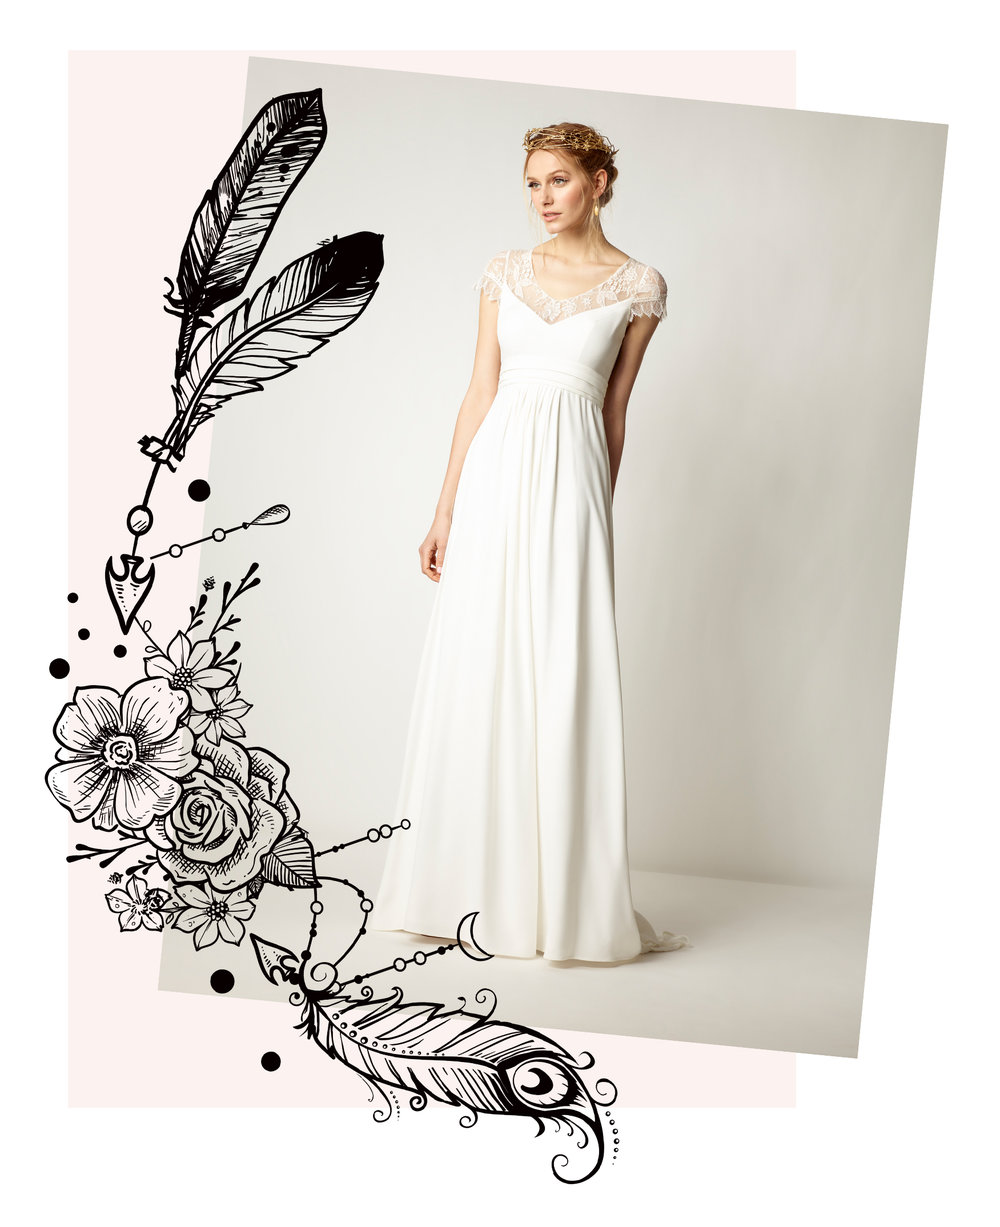 SAMPLE SALE - Get your gown at up to 70% off. Sale includes Rembo Styling gowns and more.